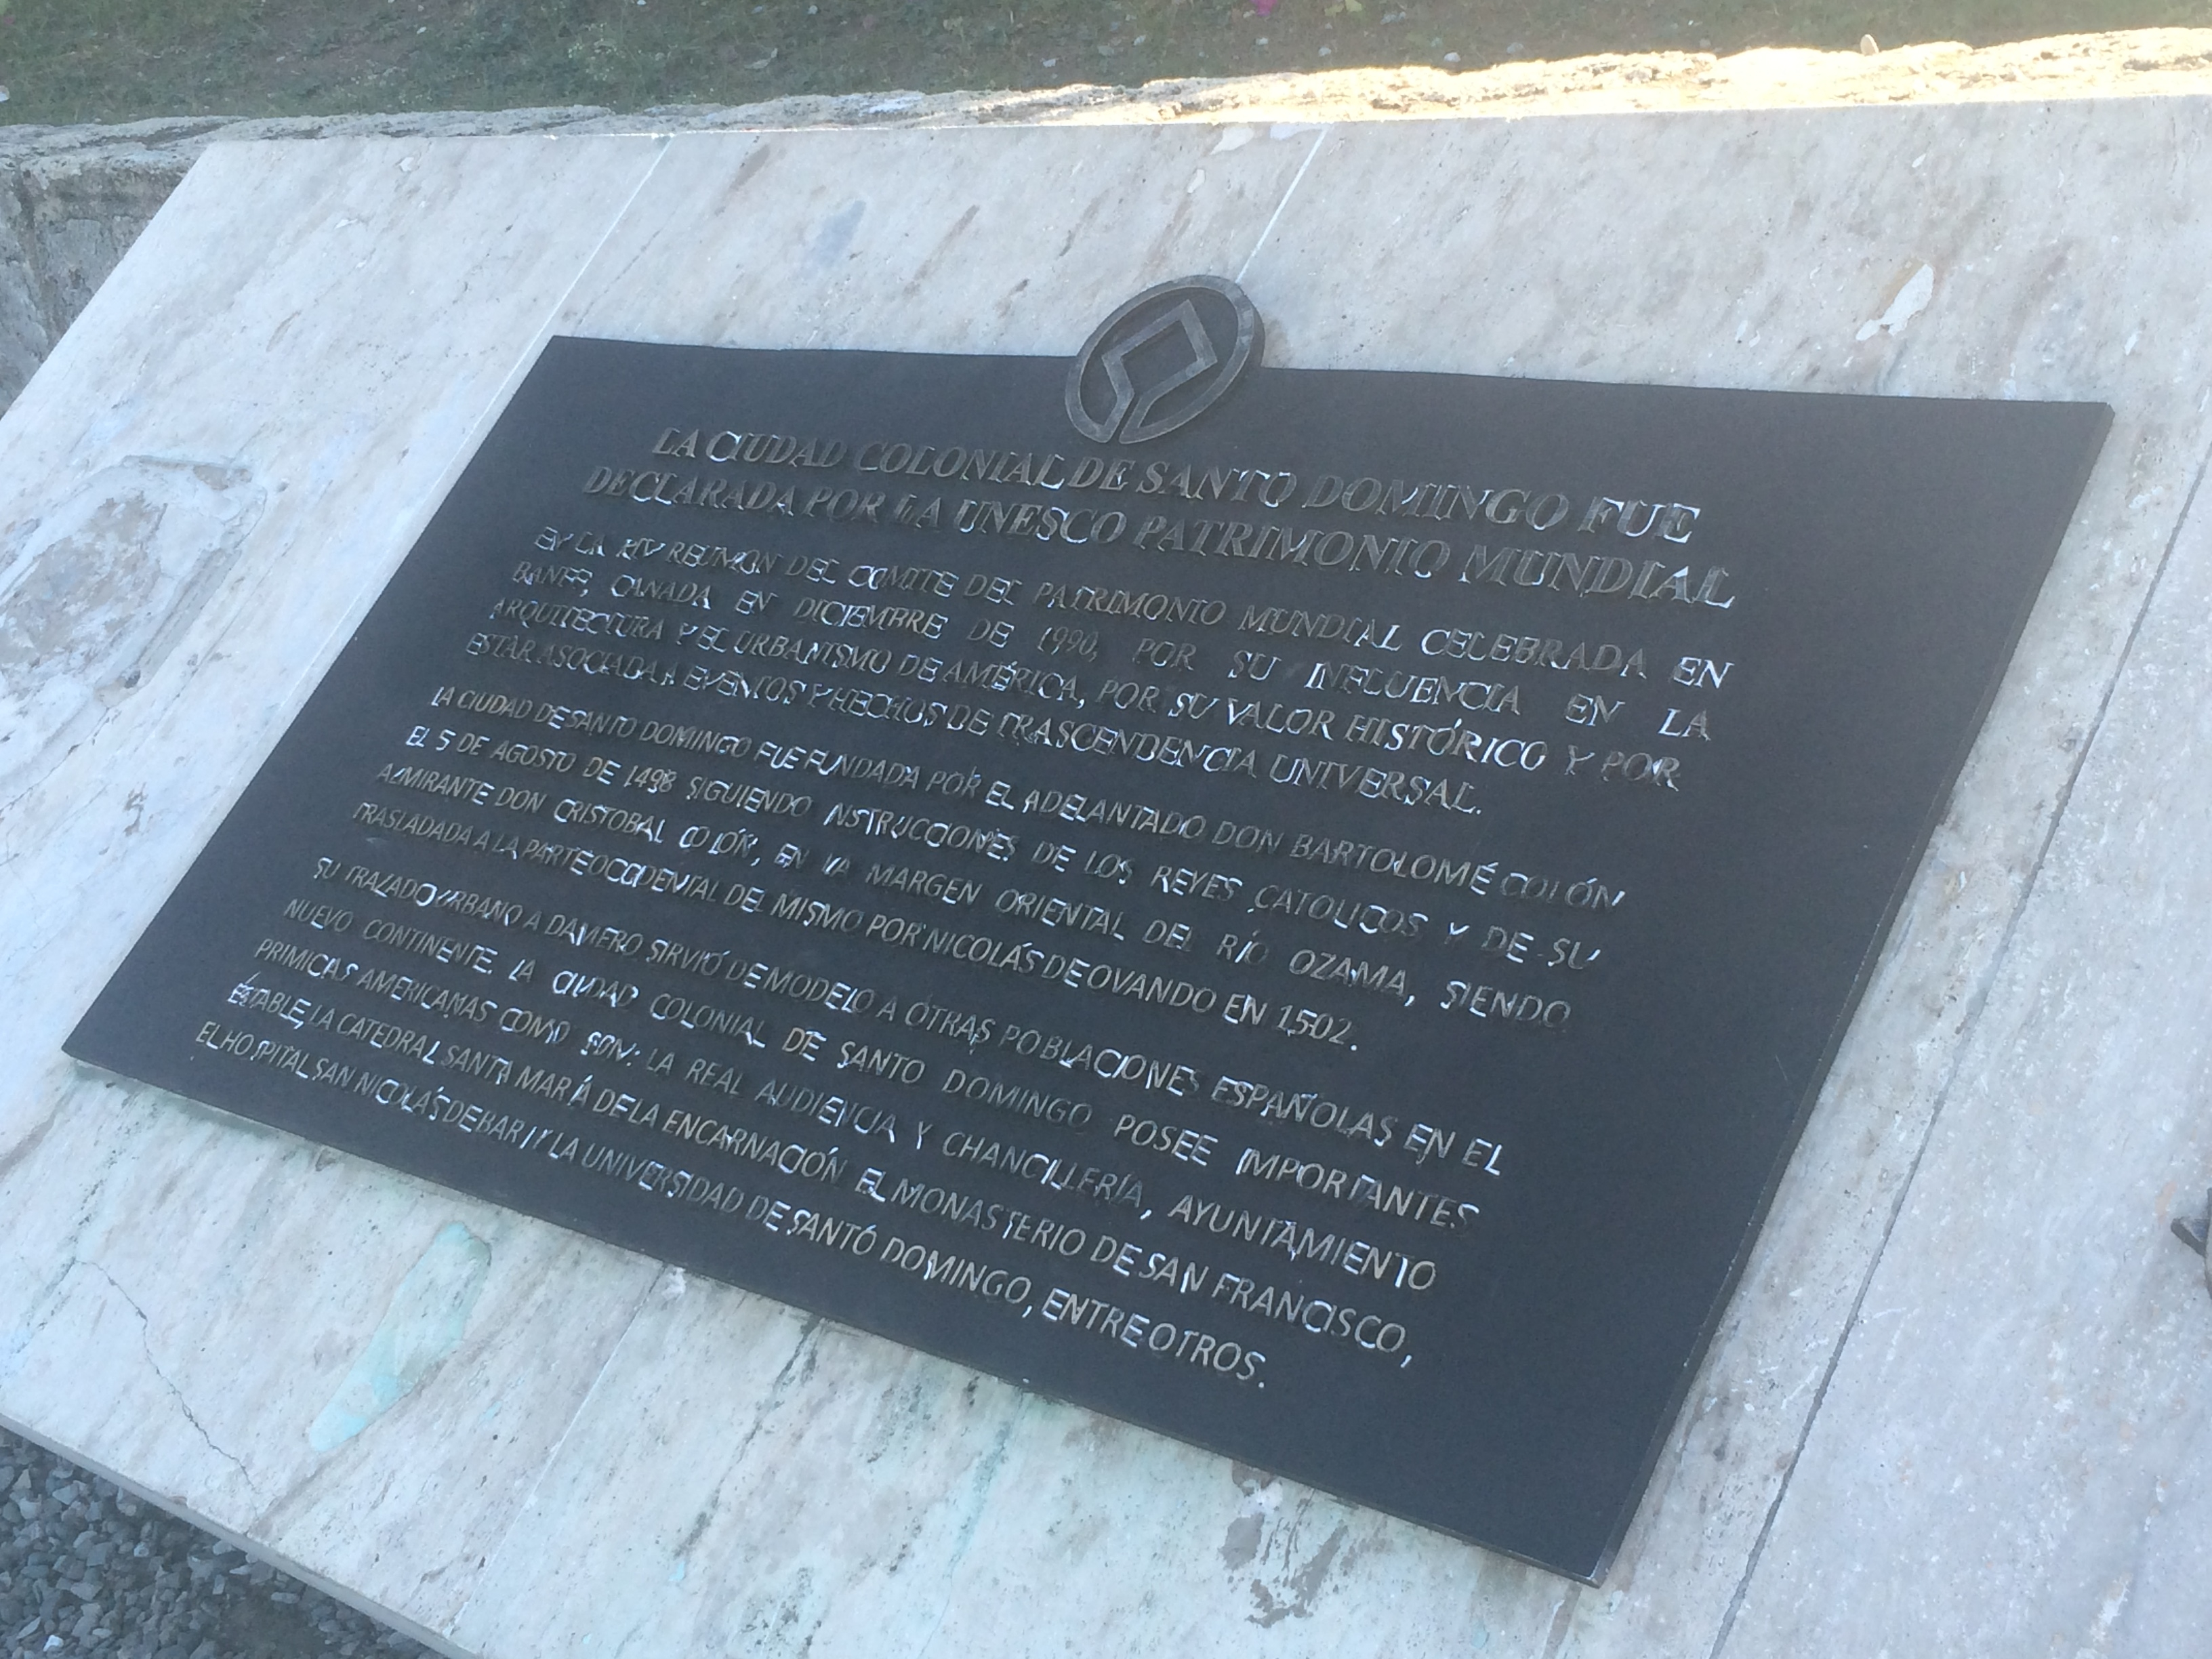 The Colonial City of Santo Domingo Marker